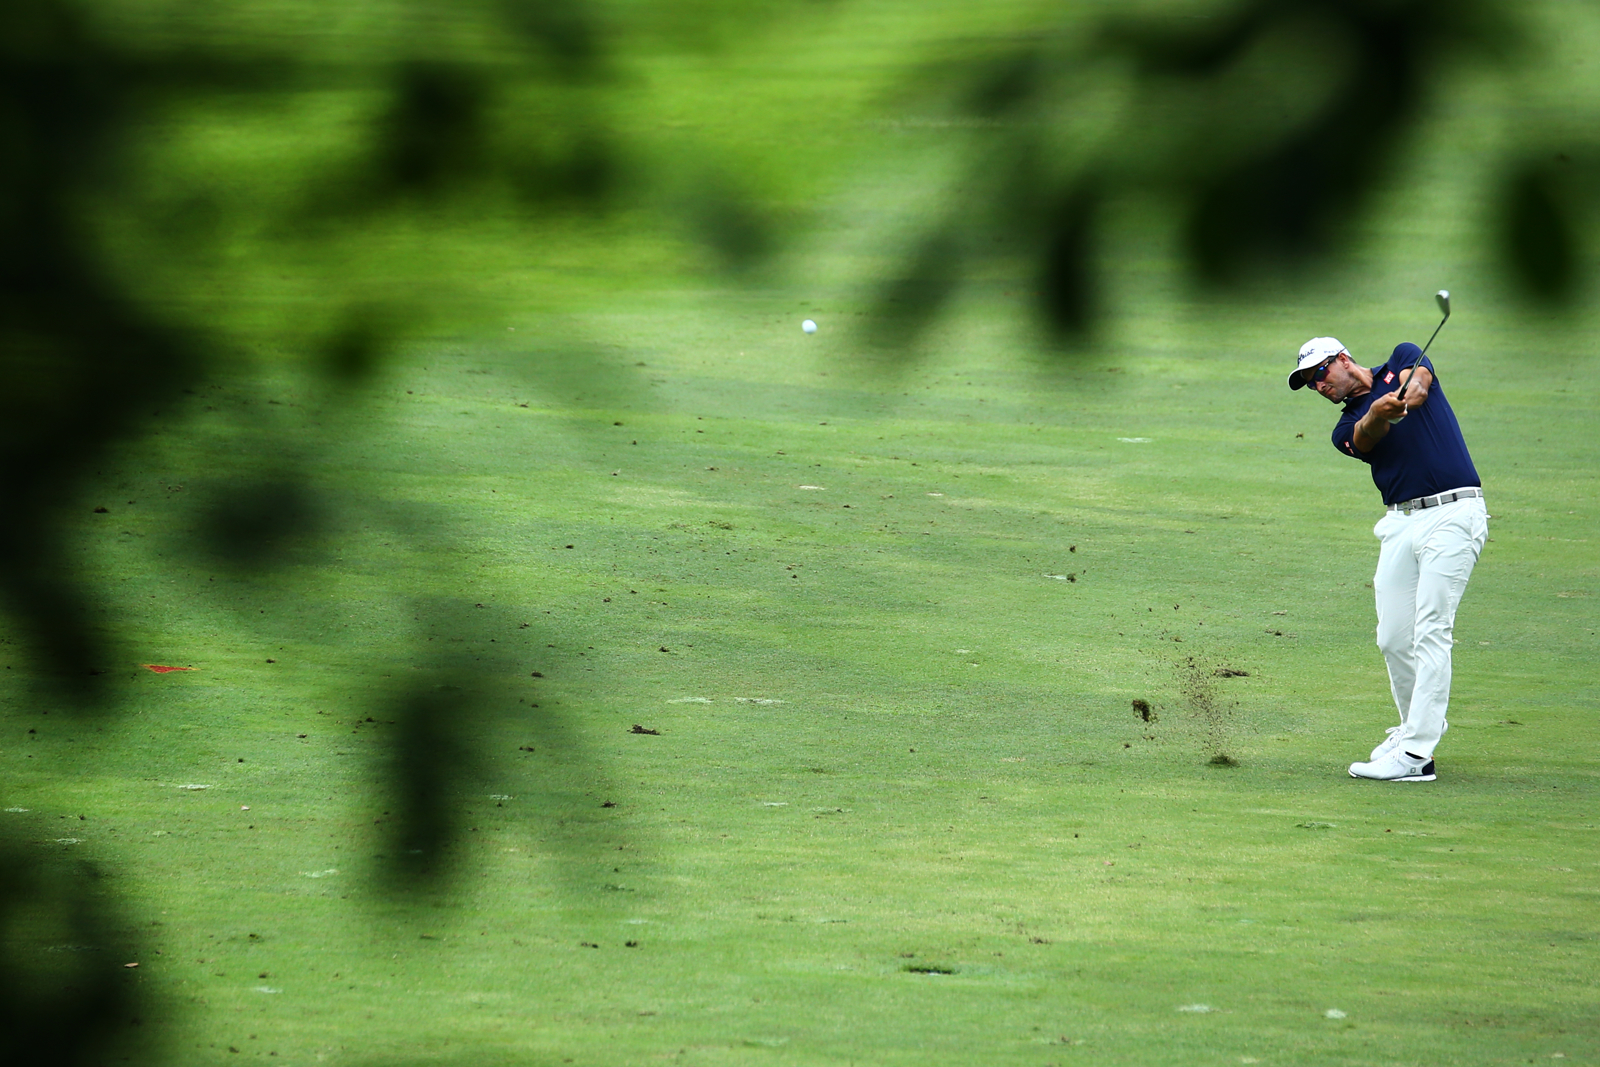 Adam Scott of Australia hits a shot on the seventh green during the SMBC Singapore Open golf tournament at Sentosa's Serapong golf course in Singapore January 20, 2017.